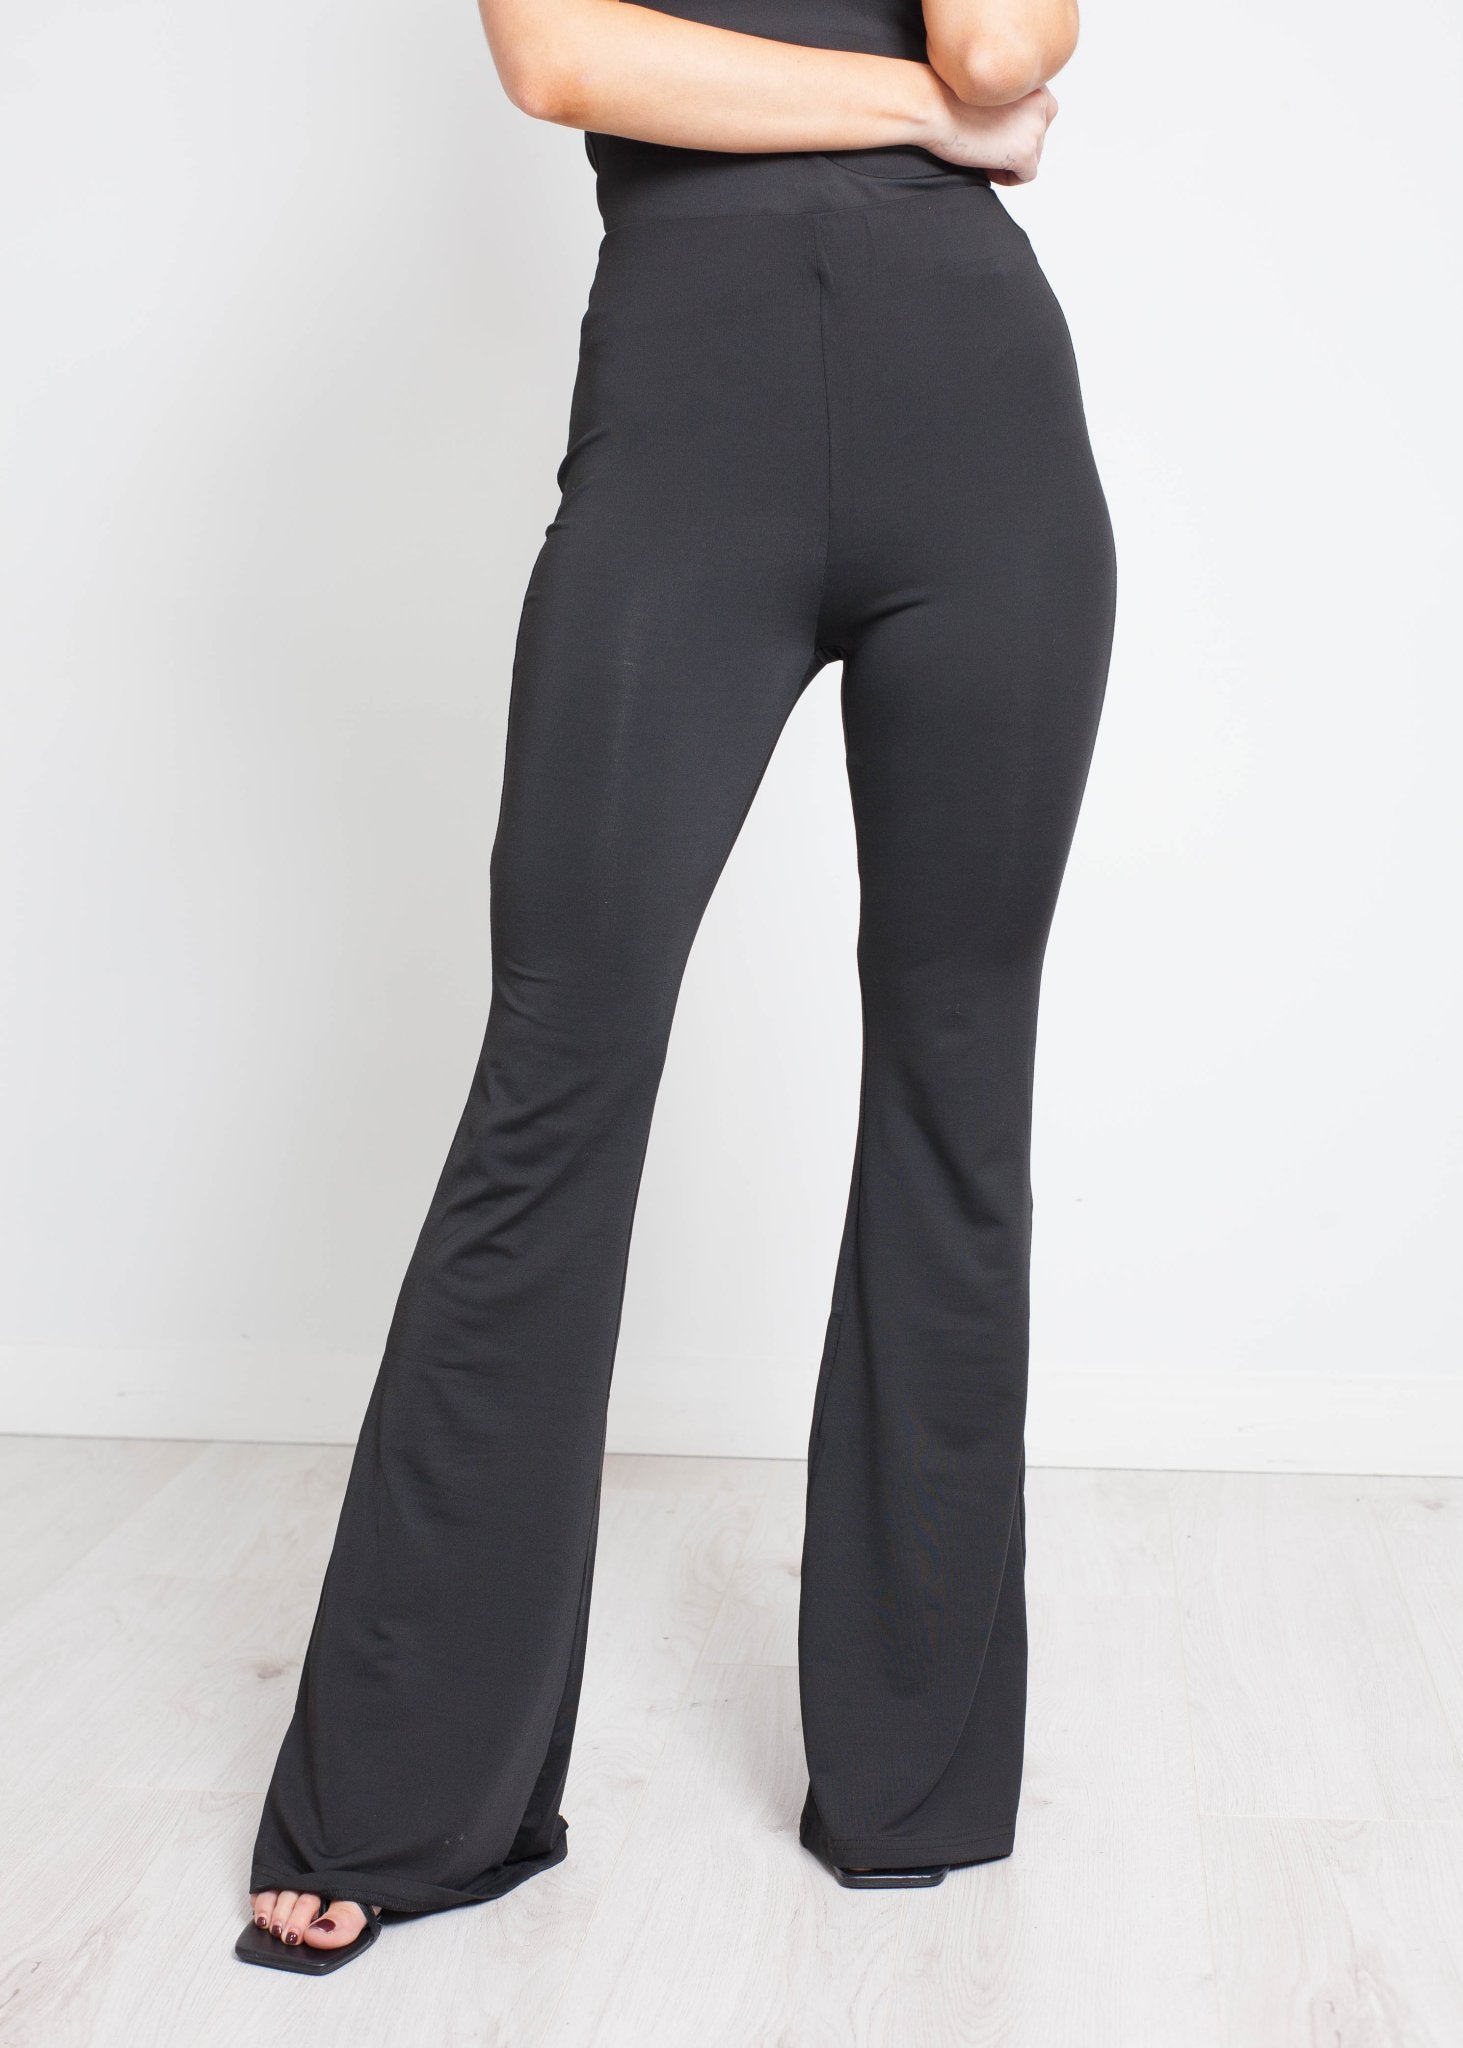 Scarlet Flared Trousers In Black - The Walk in Wardrobe